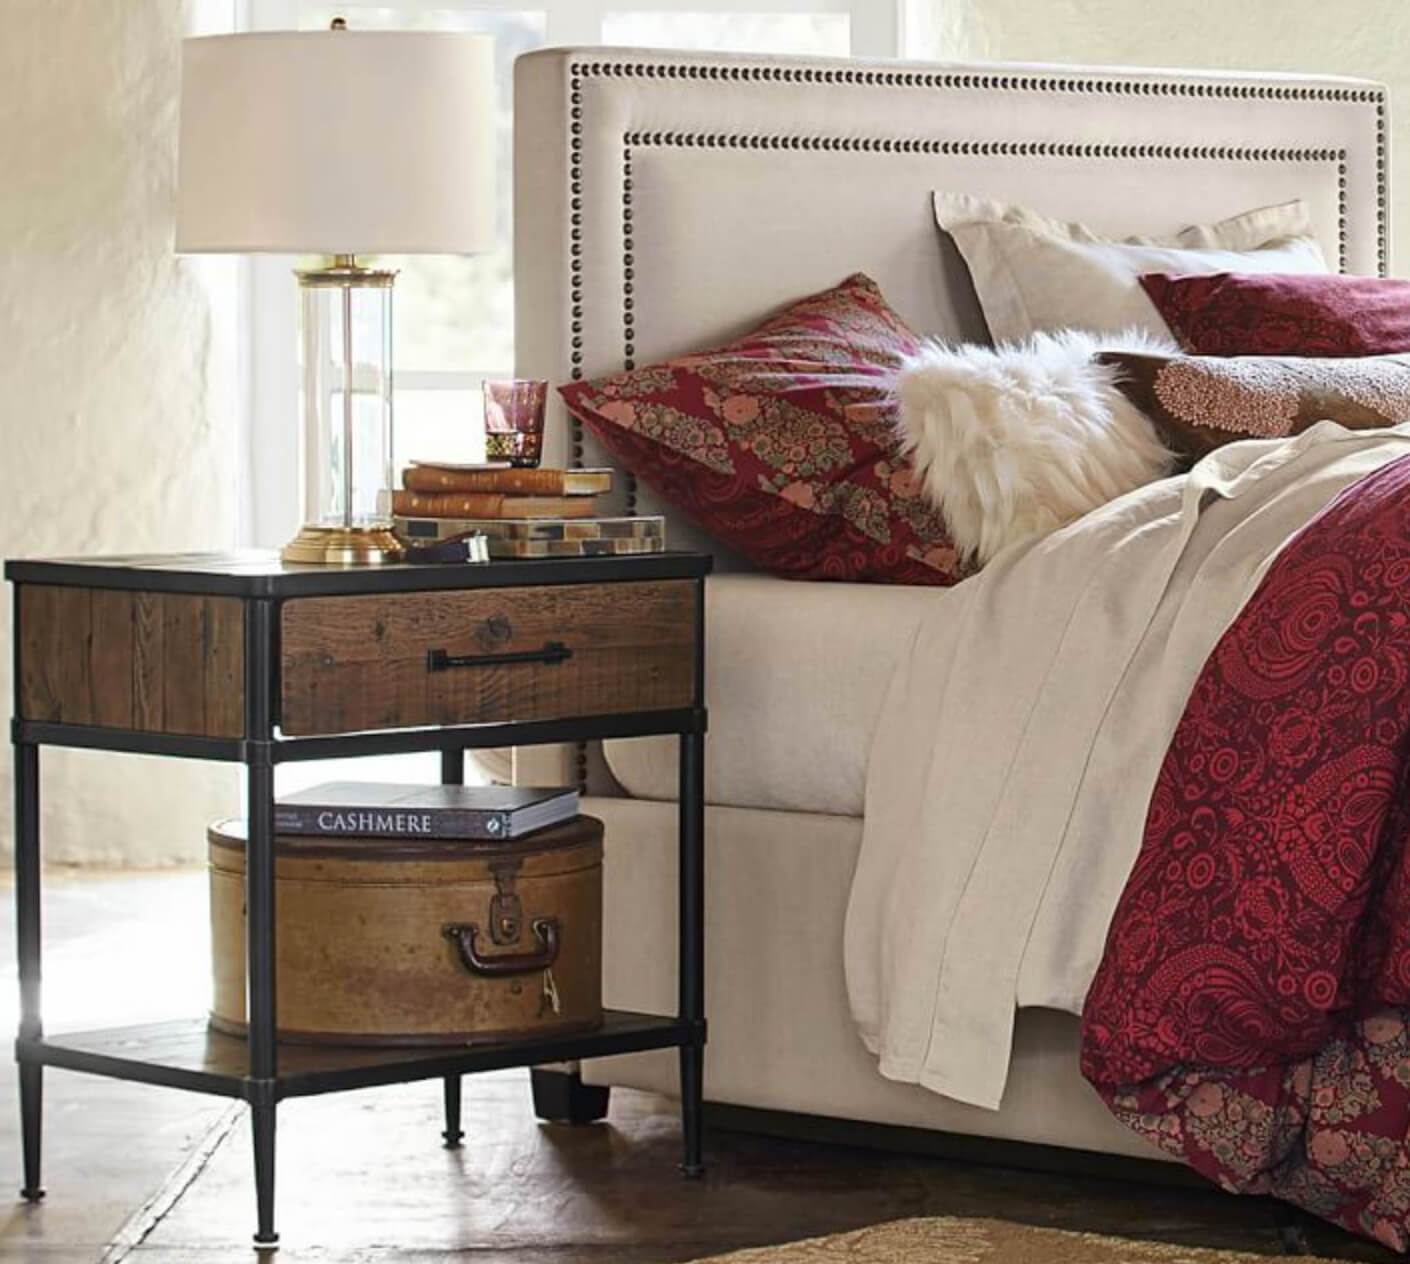 Top Designer Tips To Style Your Nightstand Freshome Com